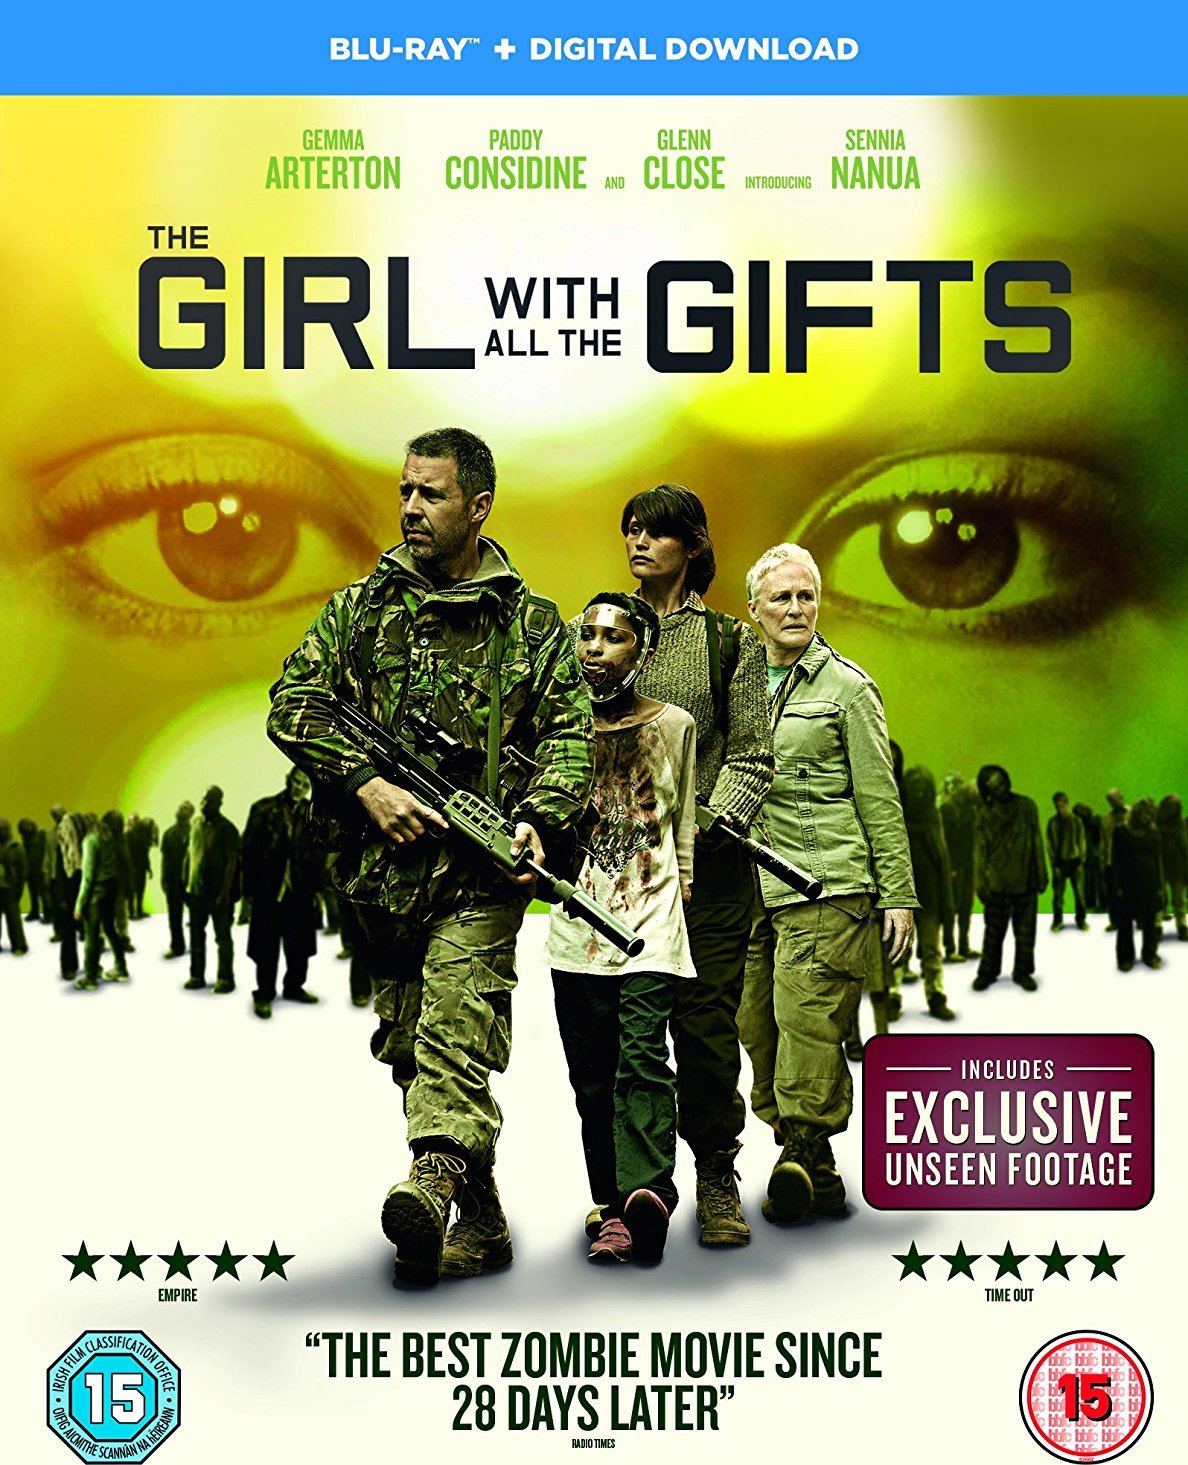 The Girl with All the Gifts (2016) poster image